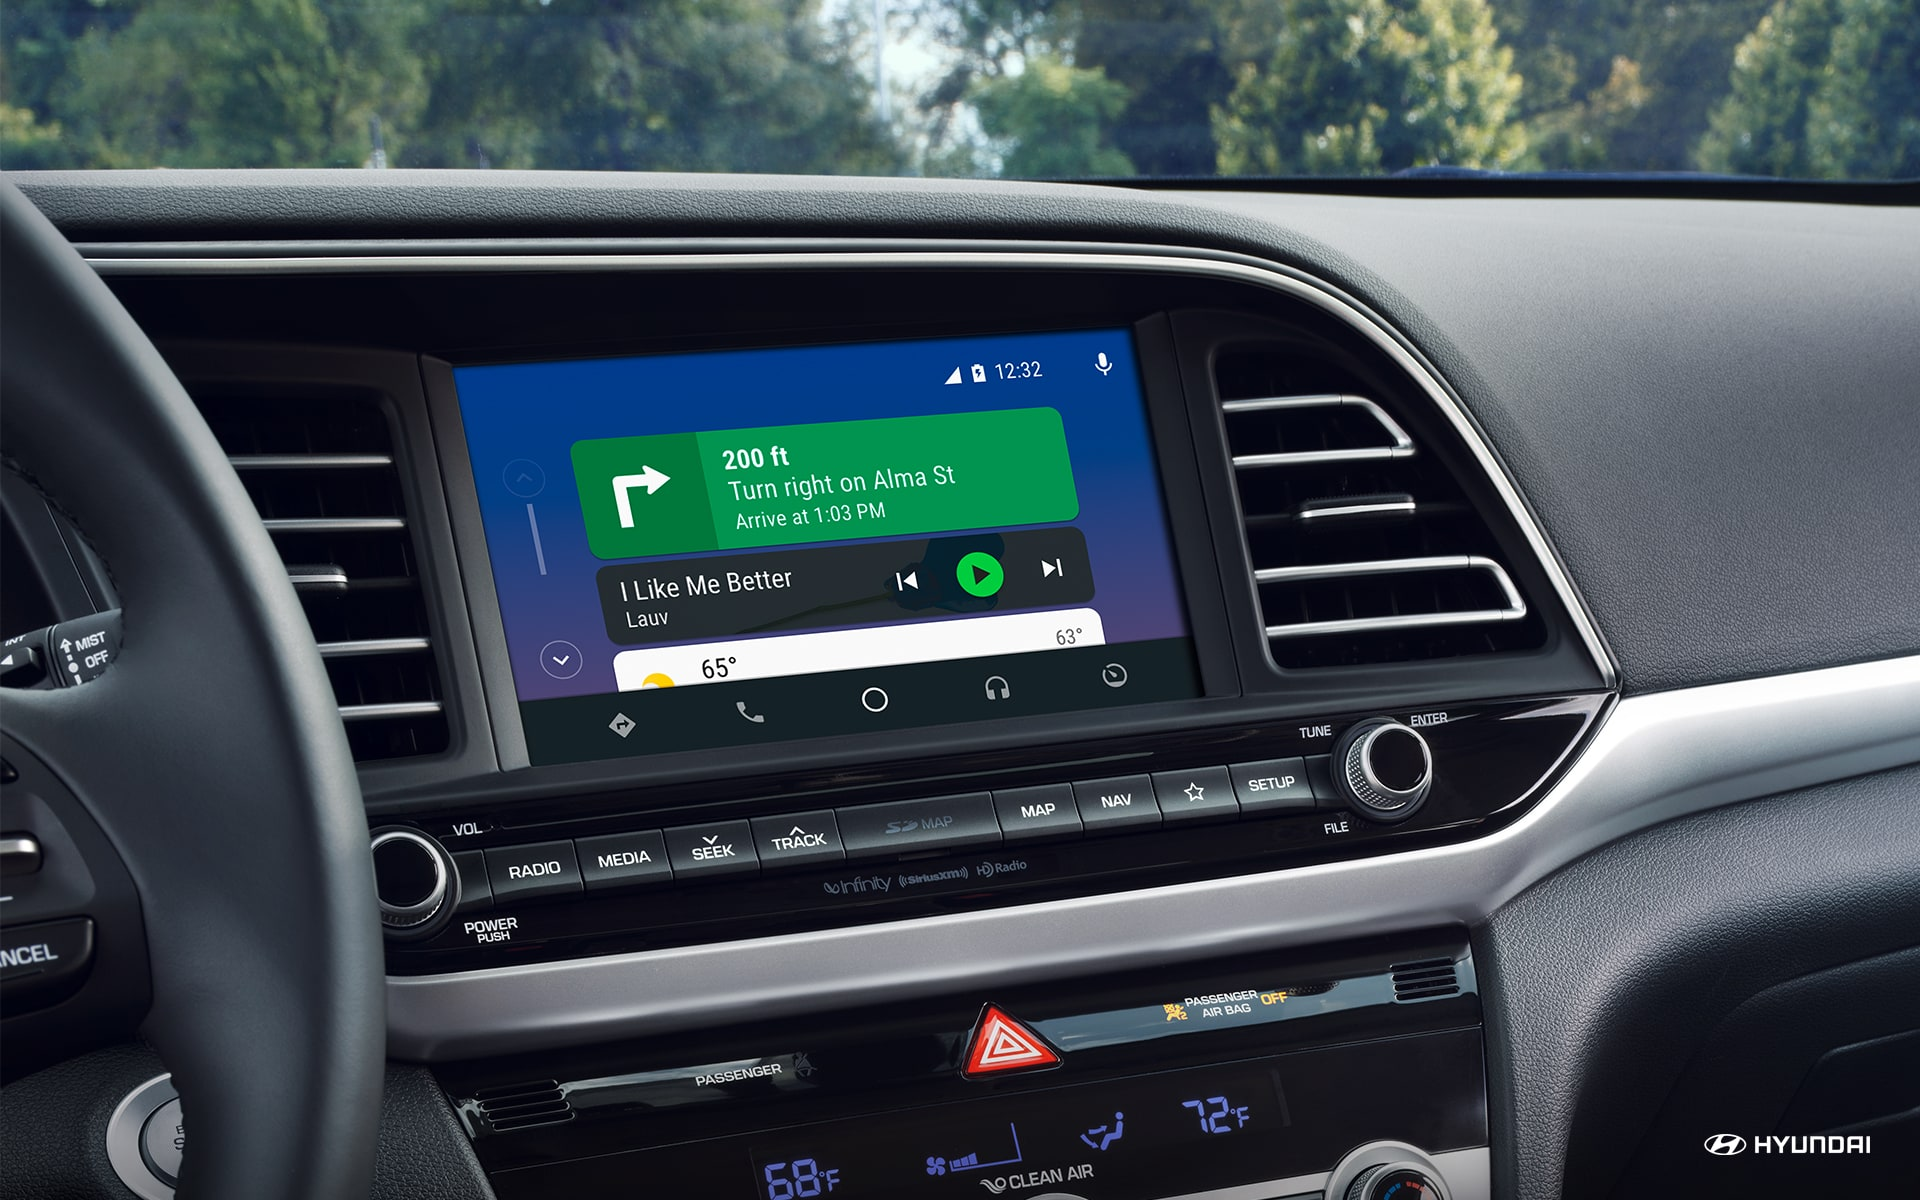 Touchscreen Display in the 2019 Elantra